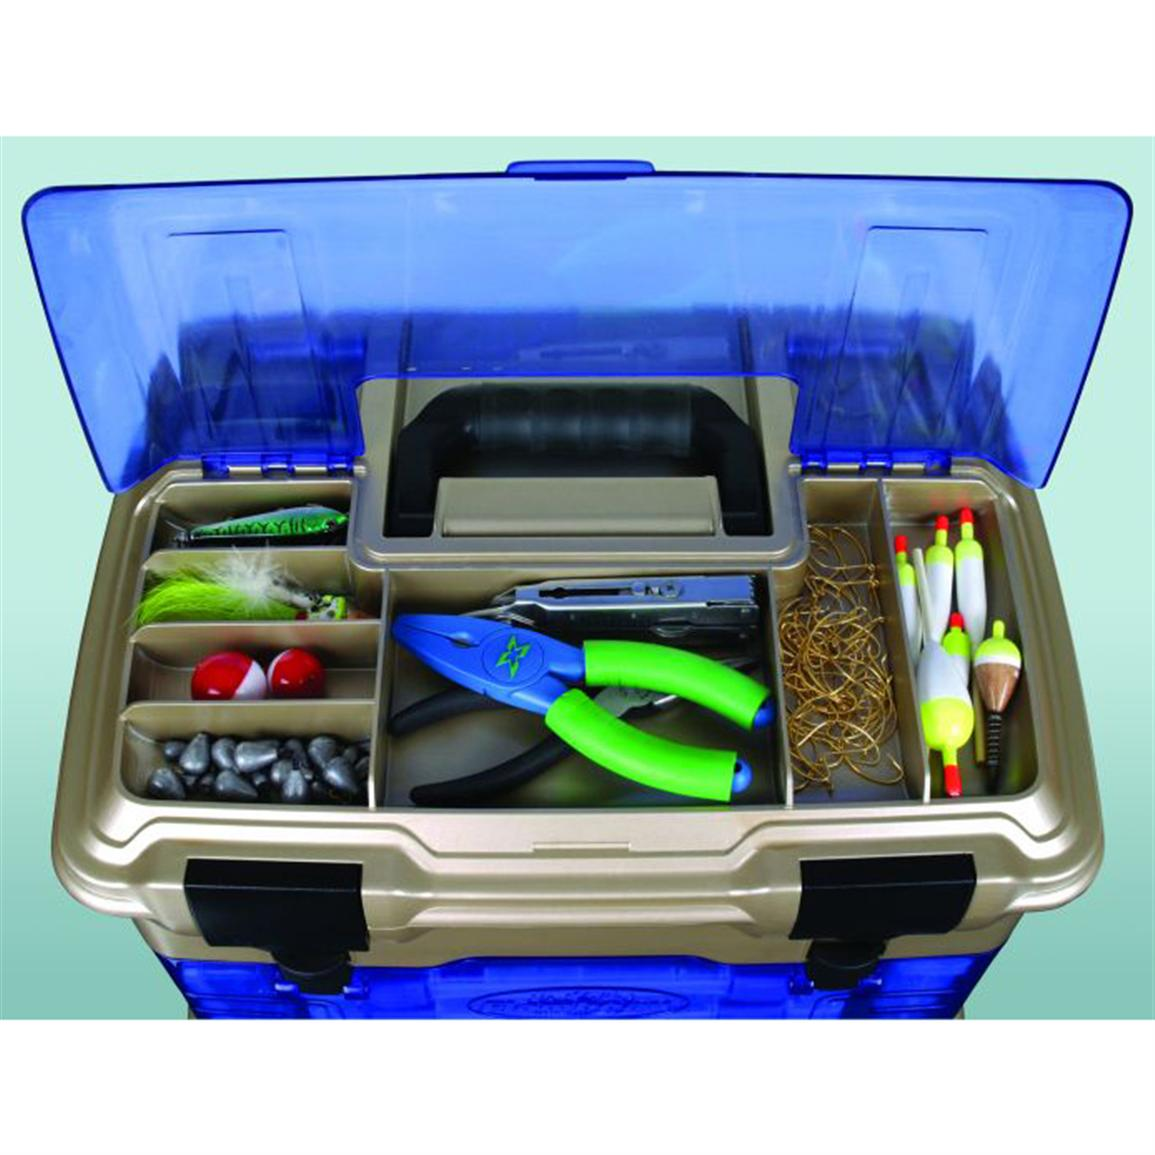 Flip-top lid yields quick access to 7 tackle storage compartments